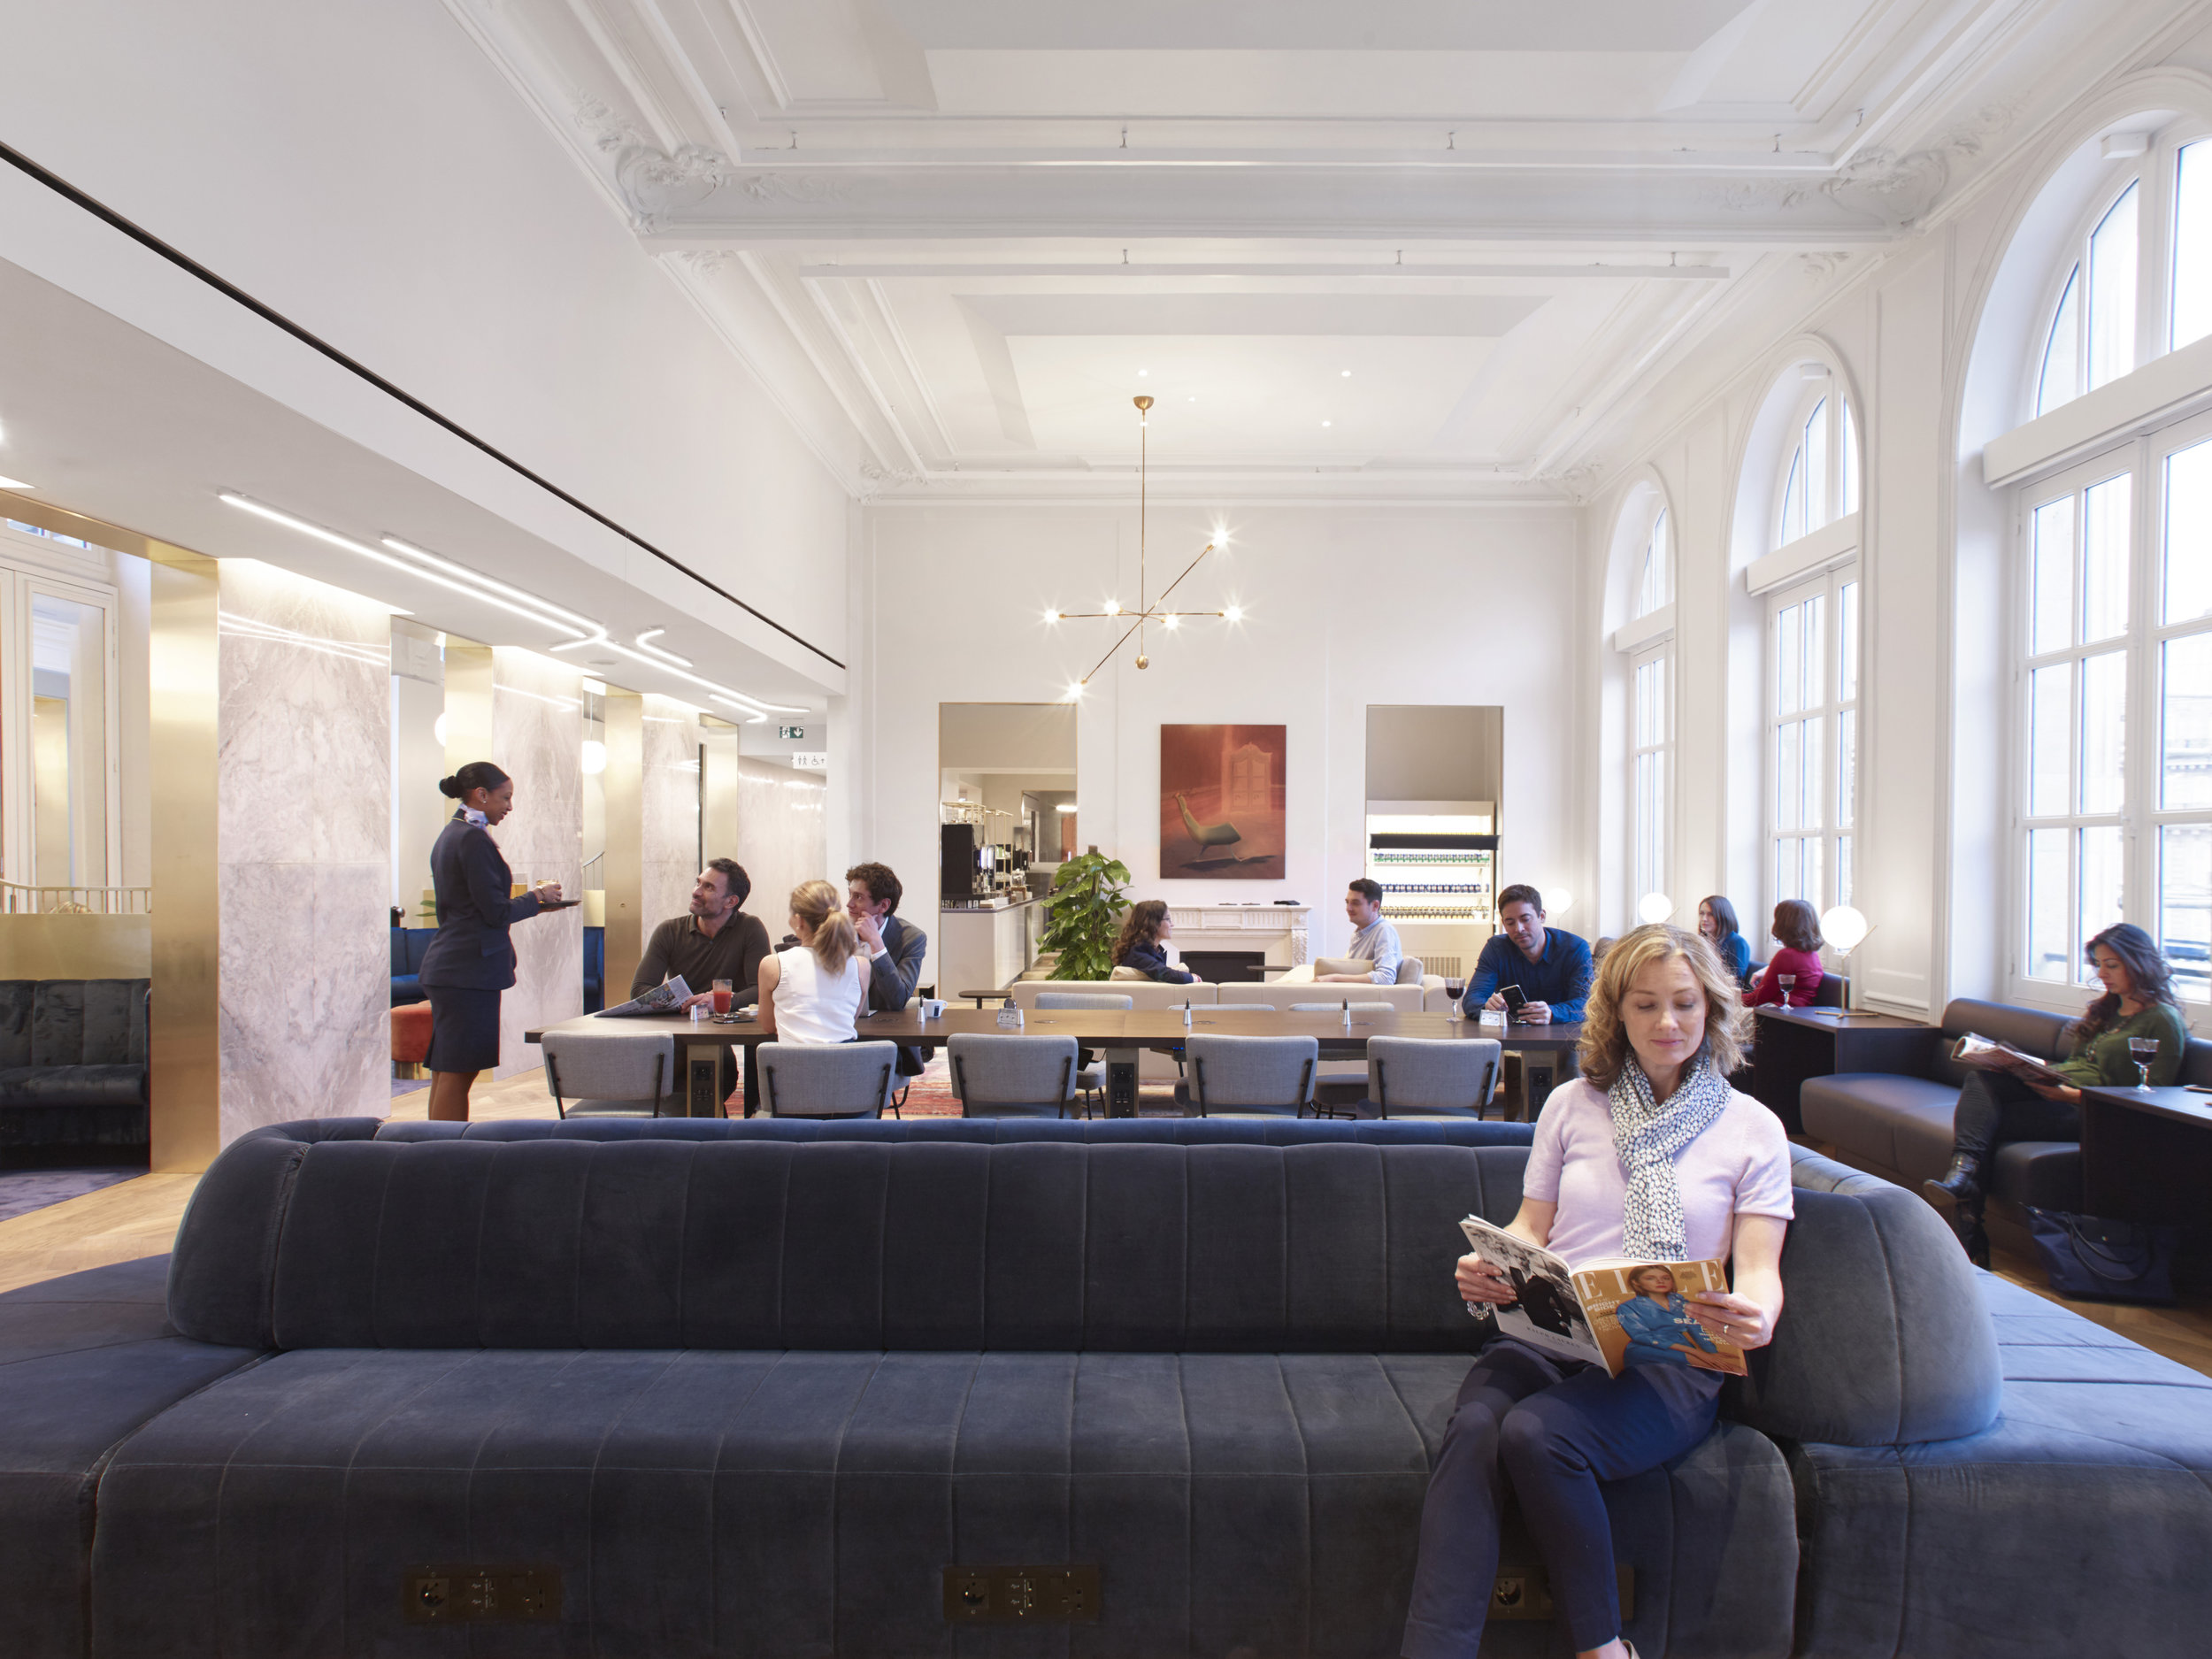 This slim FlowBar is complementing the chic design of Eurostar's Gare du Nord Business Premier Lounge.